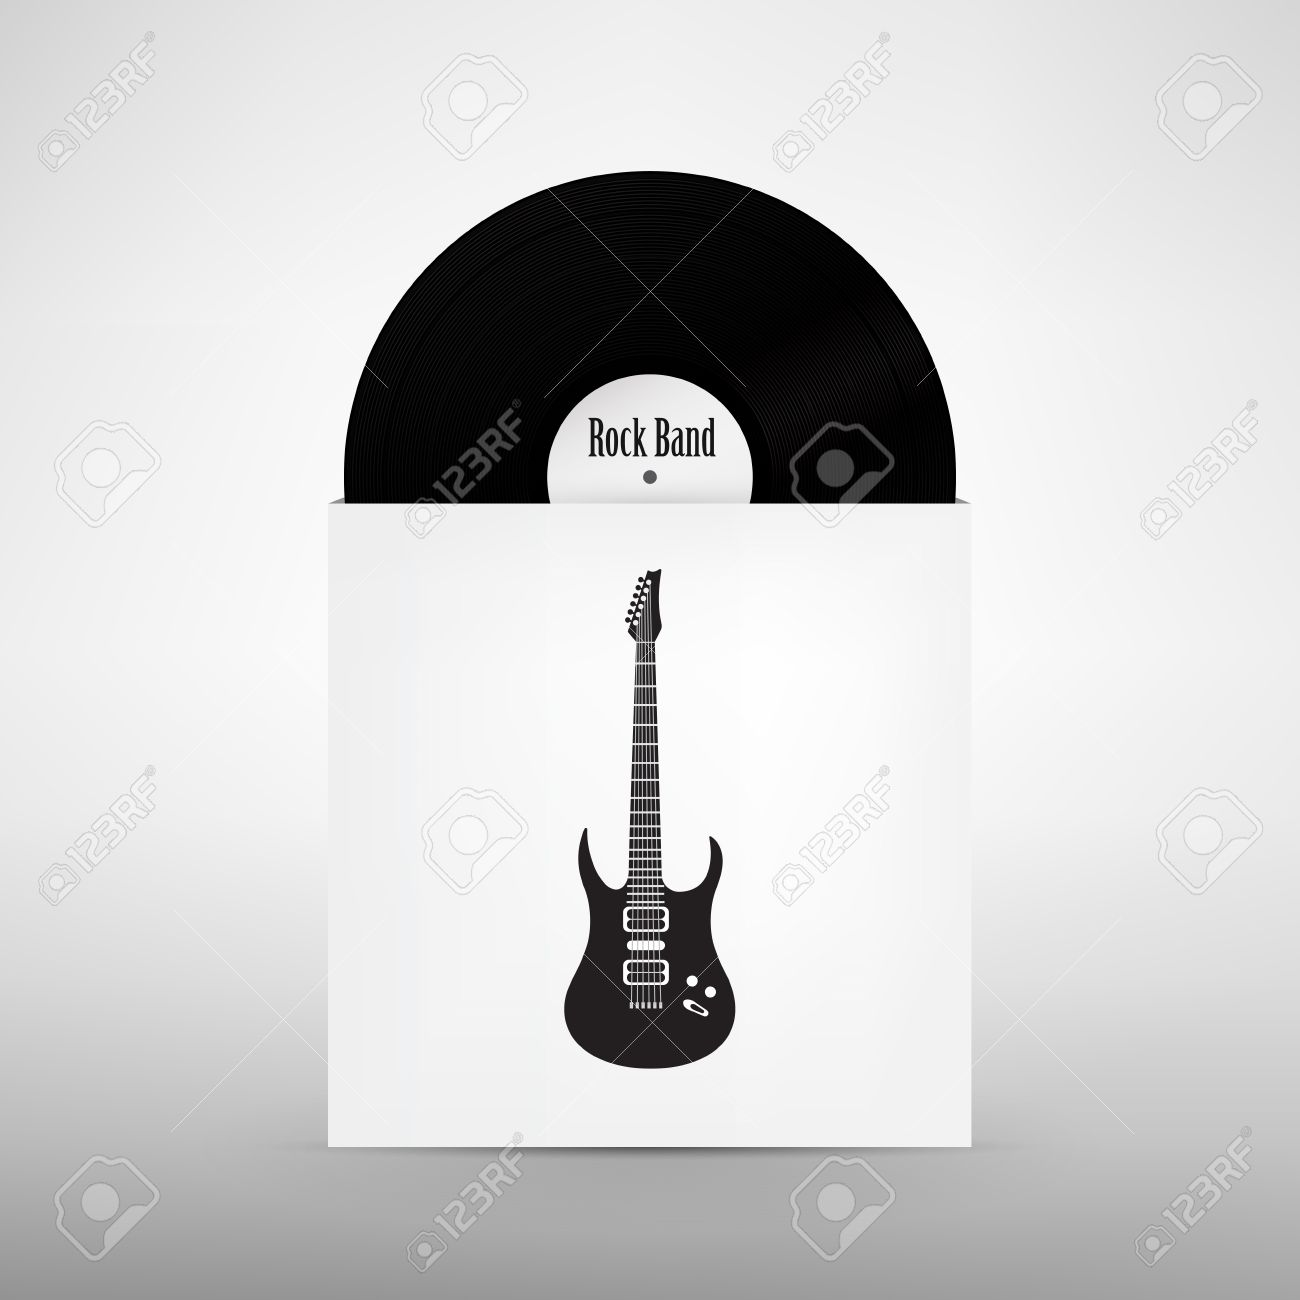 rock band design template guitar music vinyl record with cover